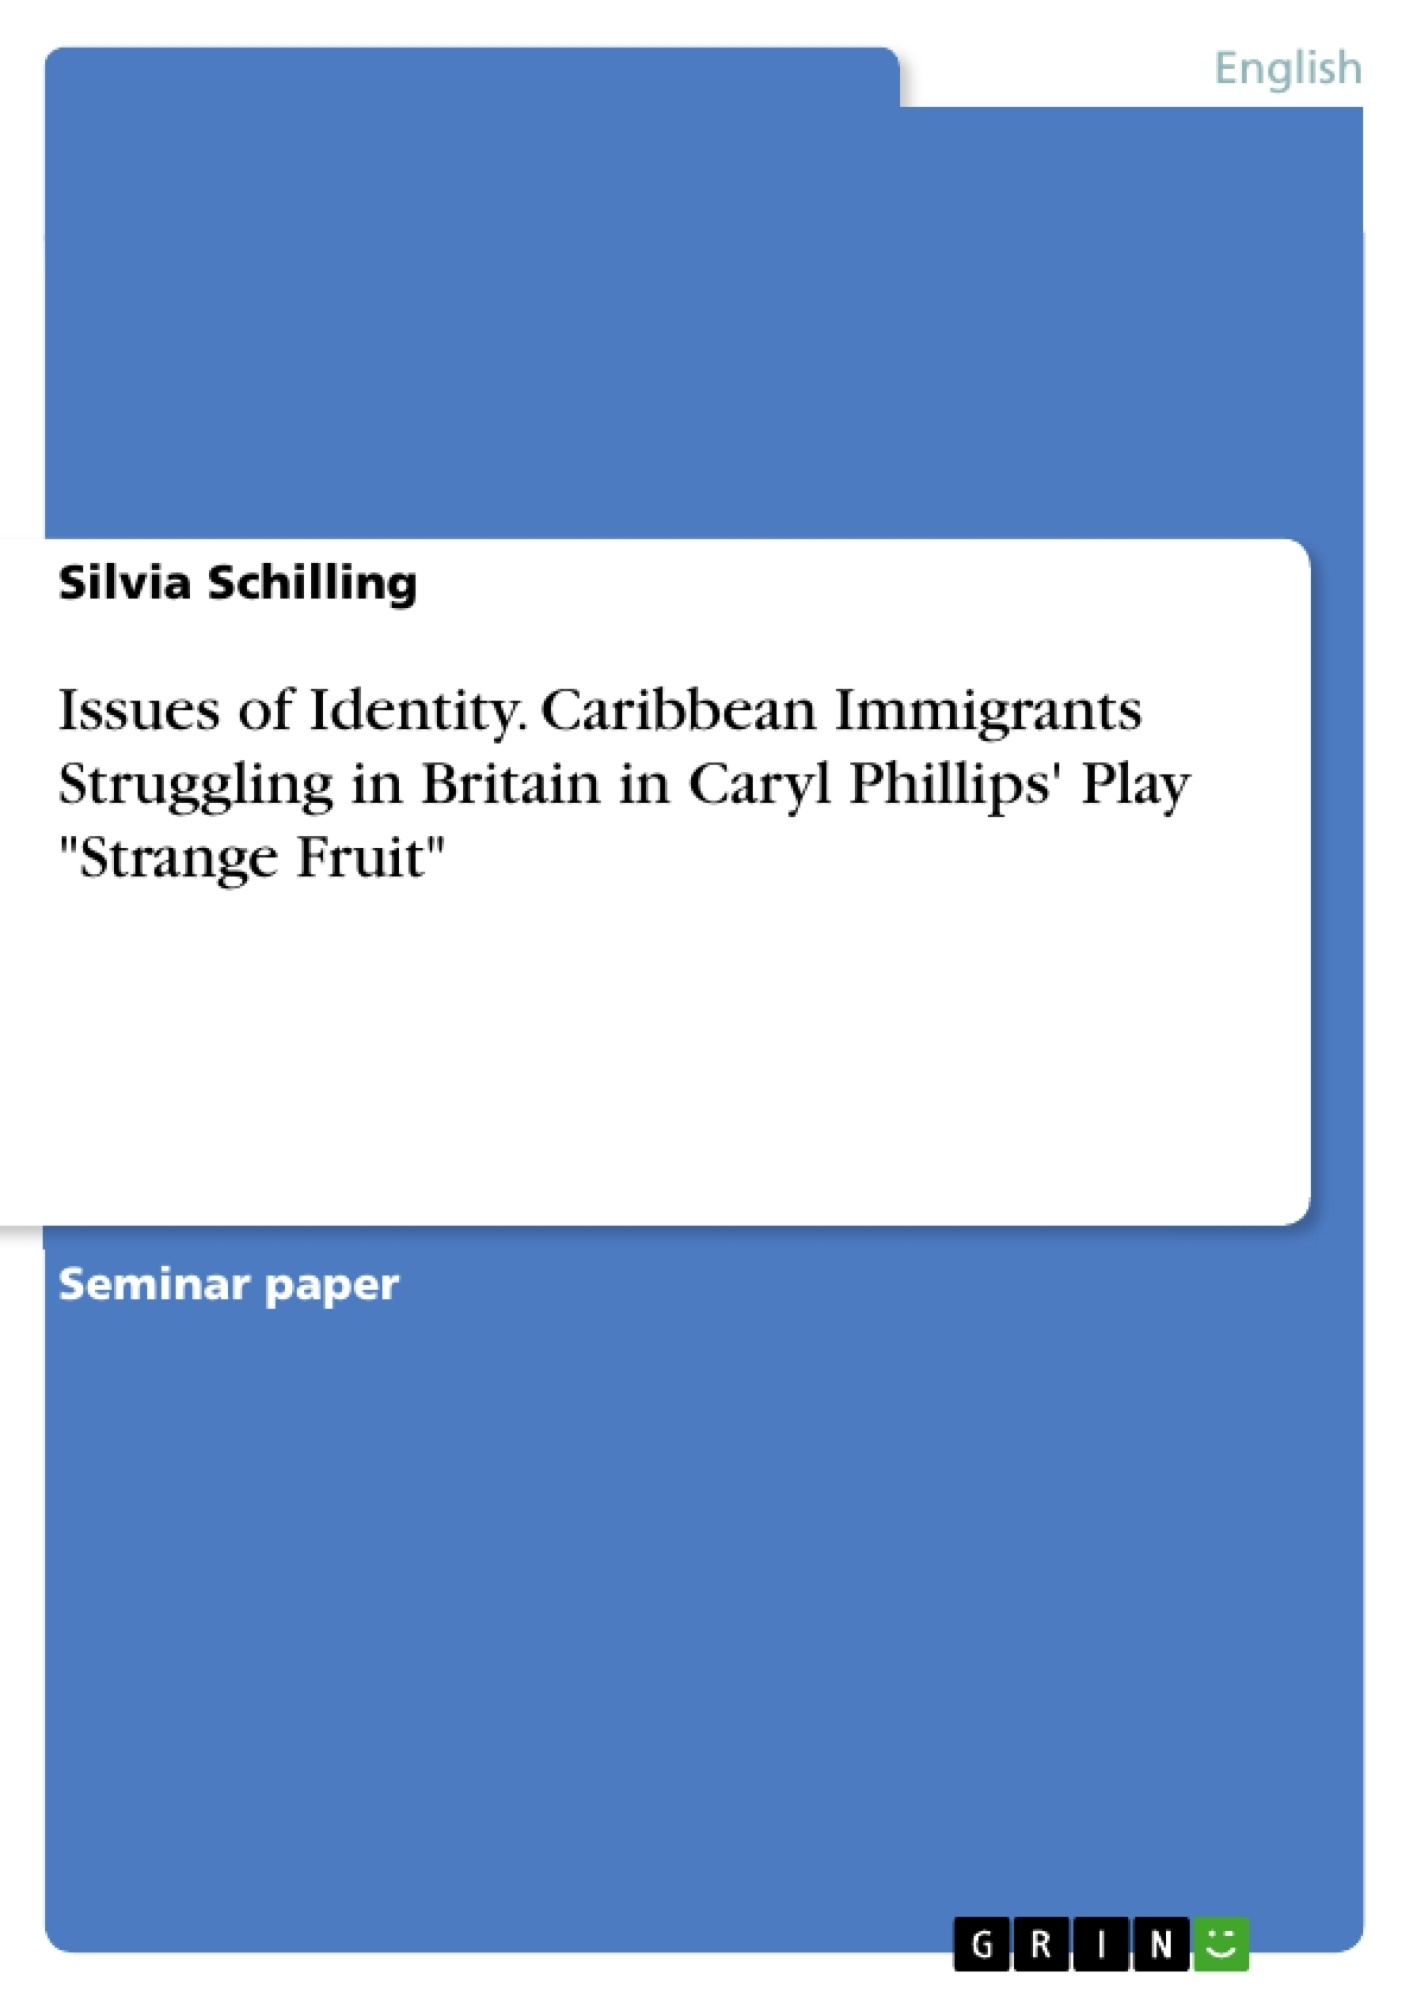 """Title: Issues of Identity. Caribbean Immigrants Struggling in Britain in Caryl Phillips' Play """"Strange Fruit"""""""